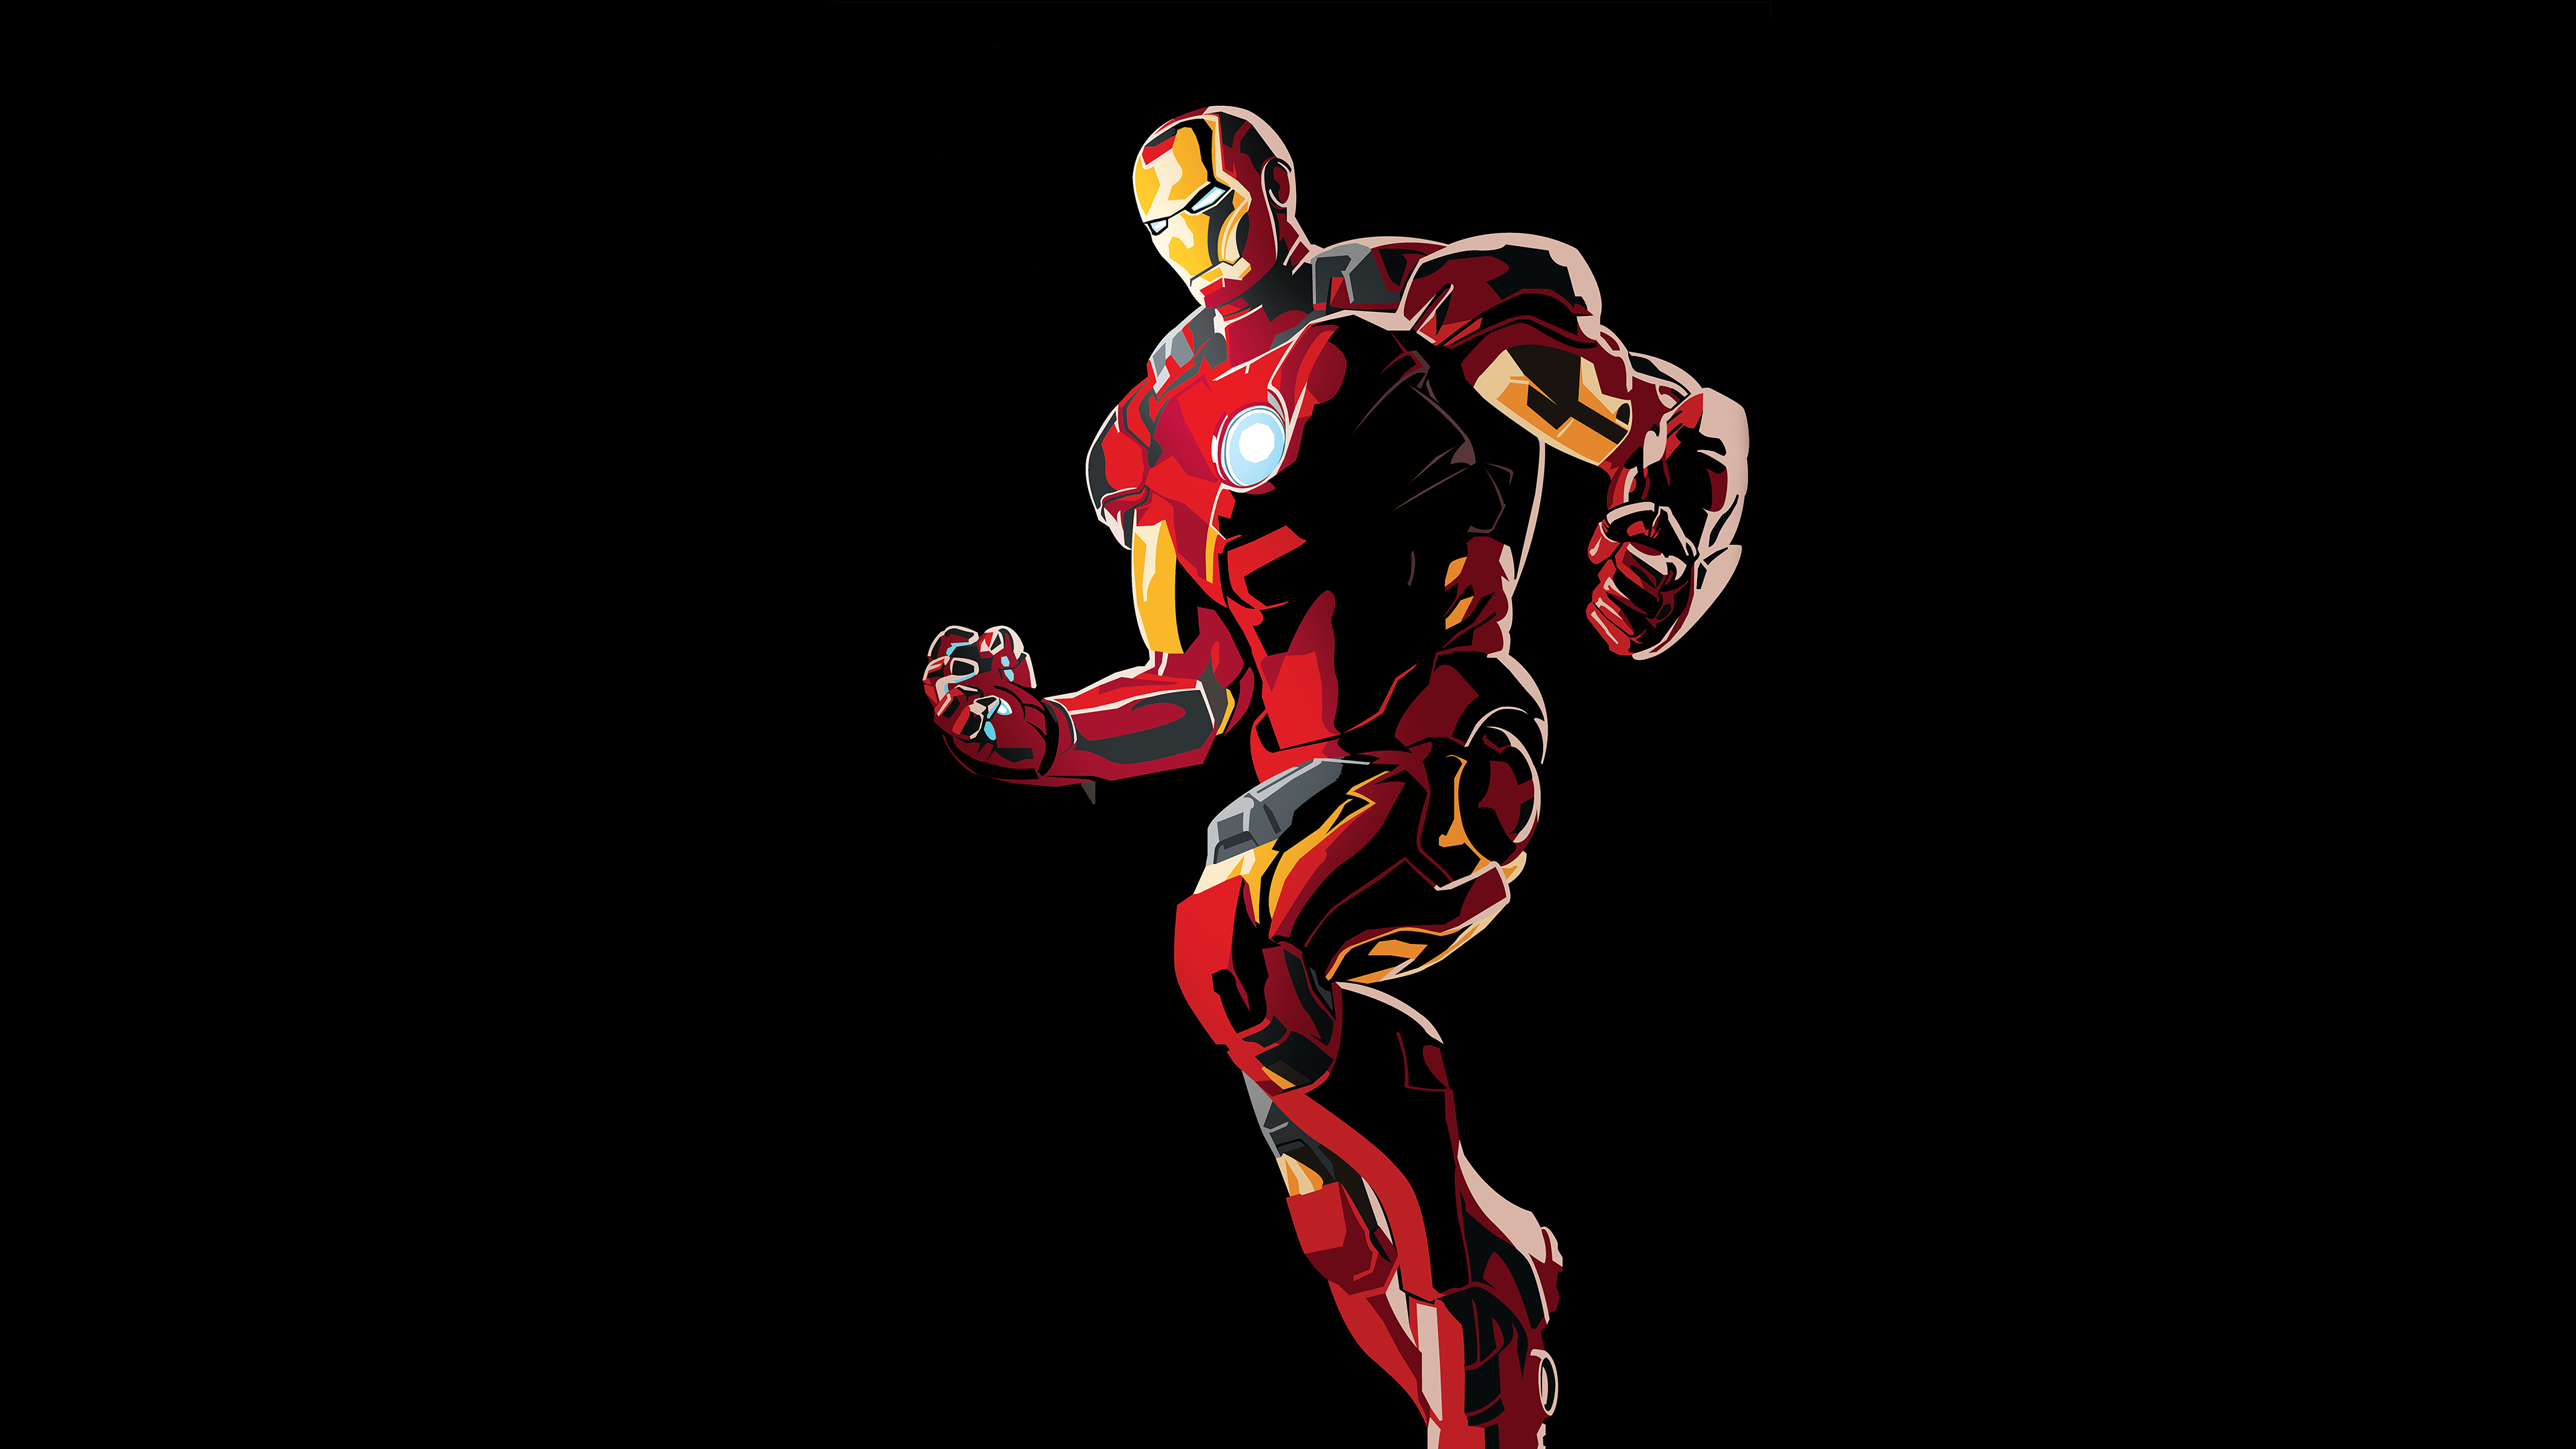 iron man graphic art 4k 1544286778 - Iron Man Graphic art 4k - superheroes wallpapers, iron man wallpapers, hd-wallpapers, digital art wallpapers, behance wallpapers, artwork wallpapers, 4k-wallpapers